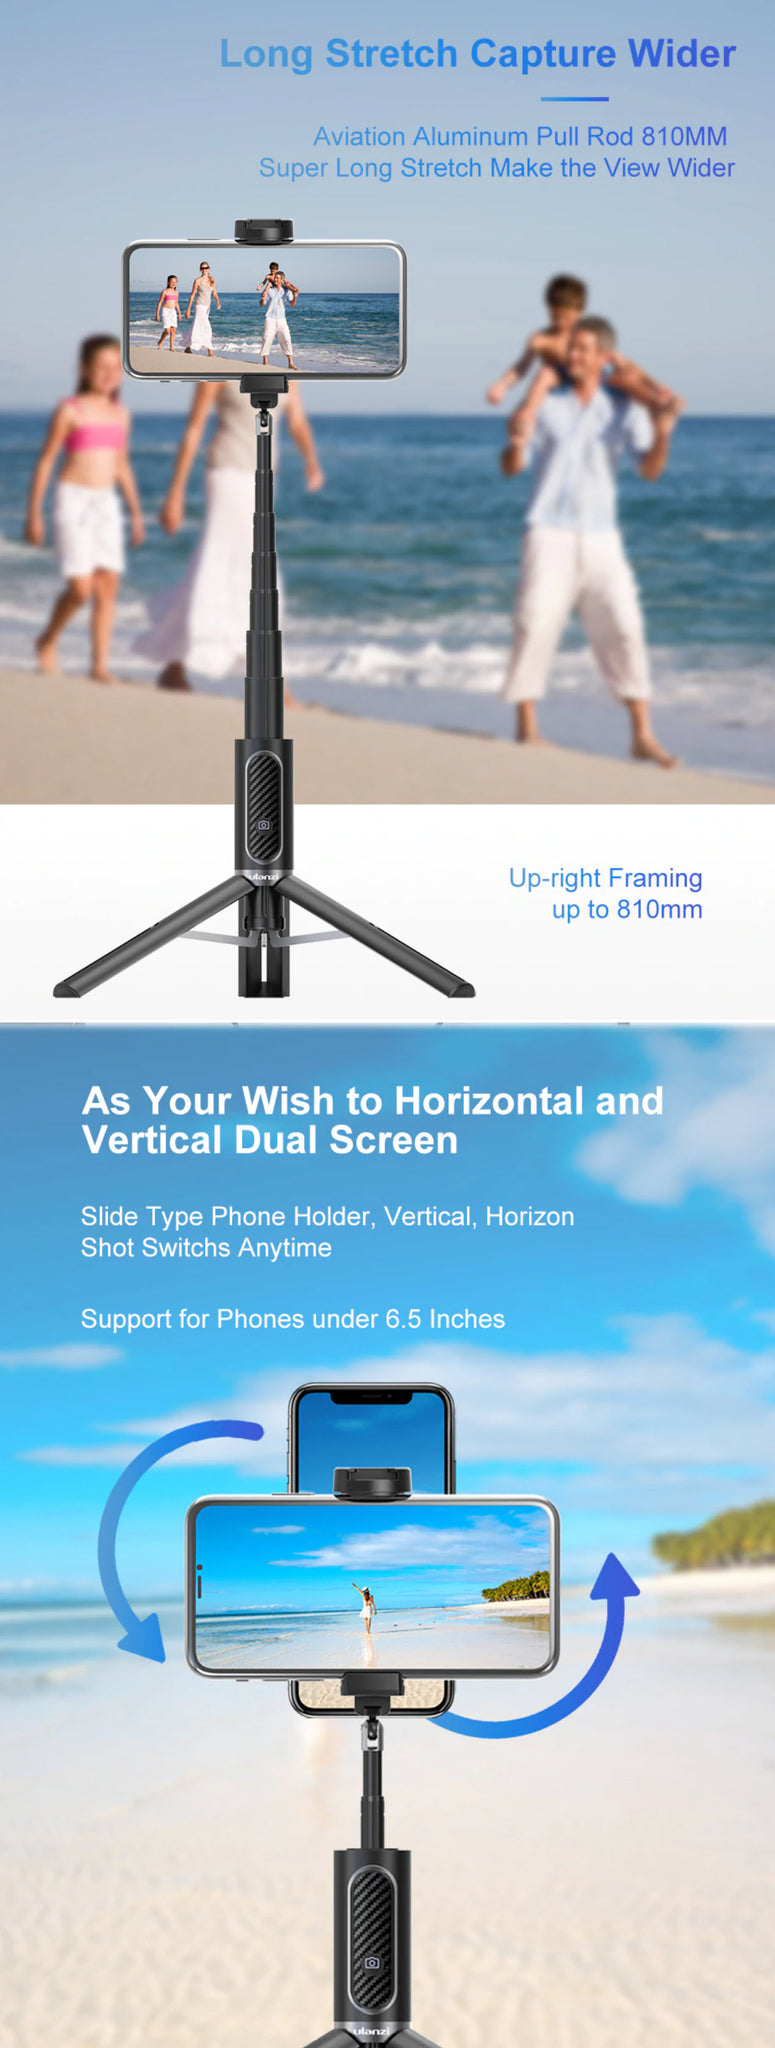 Ulanzi SK-01 Bluetooth Tripod Selfie Stick Long Stretch Capture Wider As Your Wish Horizontal and Vertical Dual Screen